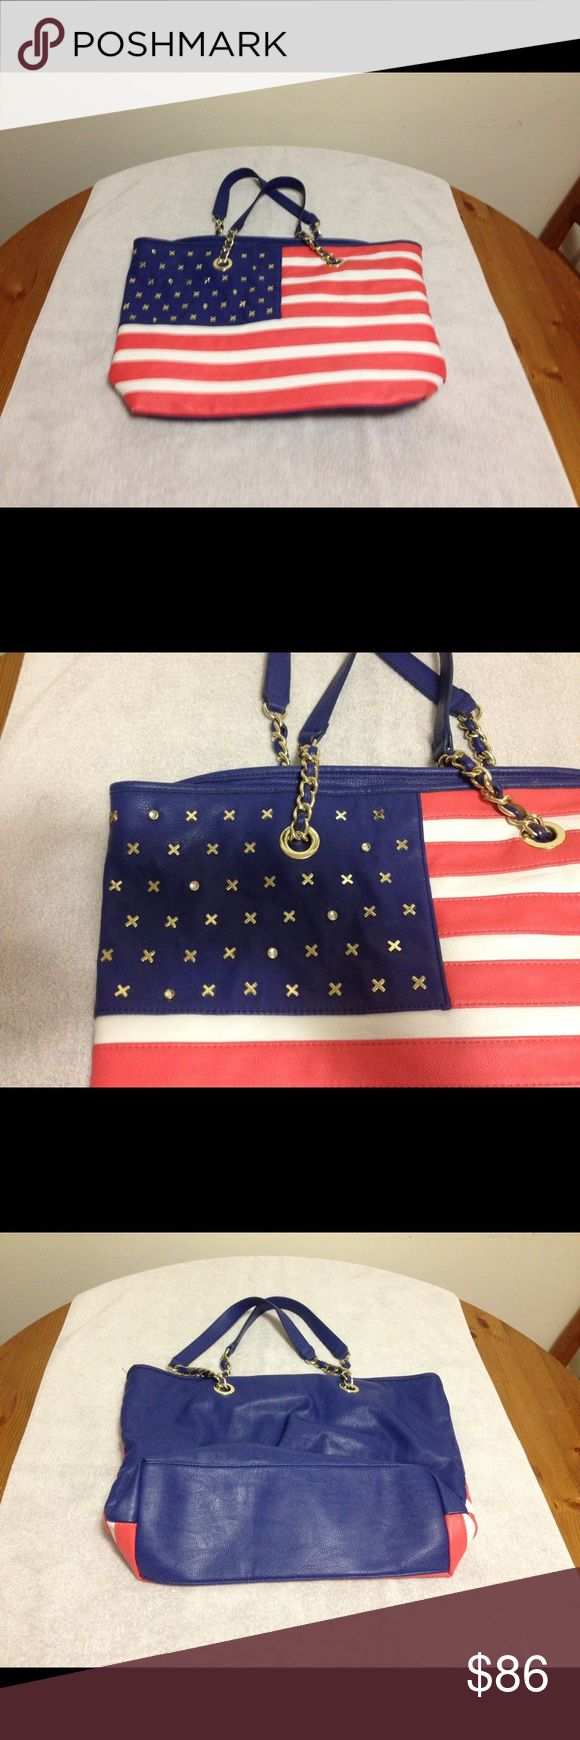 Betsey Johnson Large American Flag Satchel Betsey Johnson Large American Flag Satchel....I will have to measure this when I get home for you, but for now, it's just REALLY BIG! I took pics before I ran out to work. The only issues are tiny scuffs in 3 of the 4 corners...there is a pic of the worst one. This purse is amazing! Betsey Johnson Bags Satchels